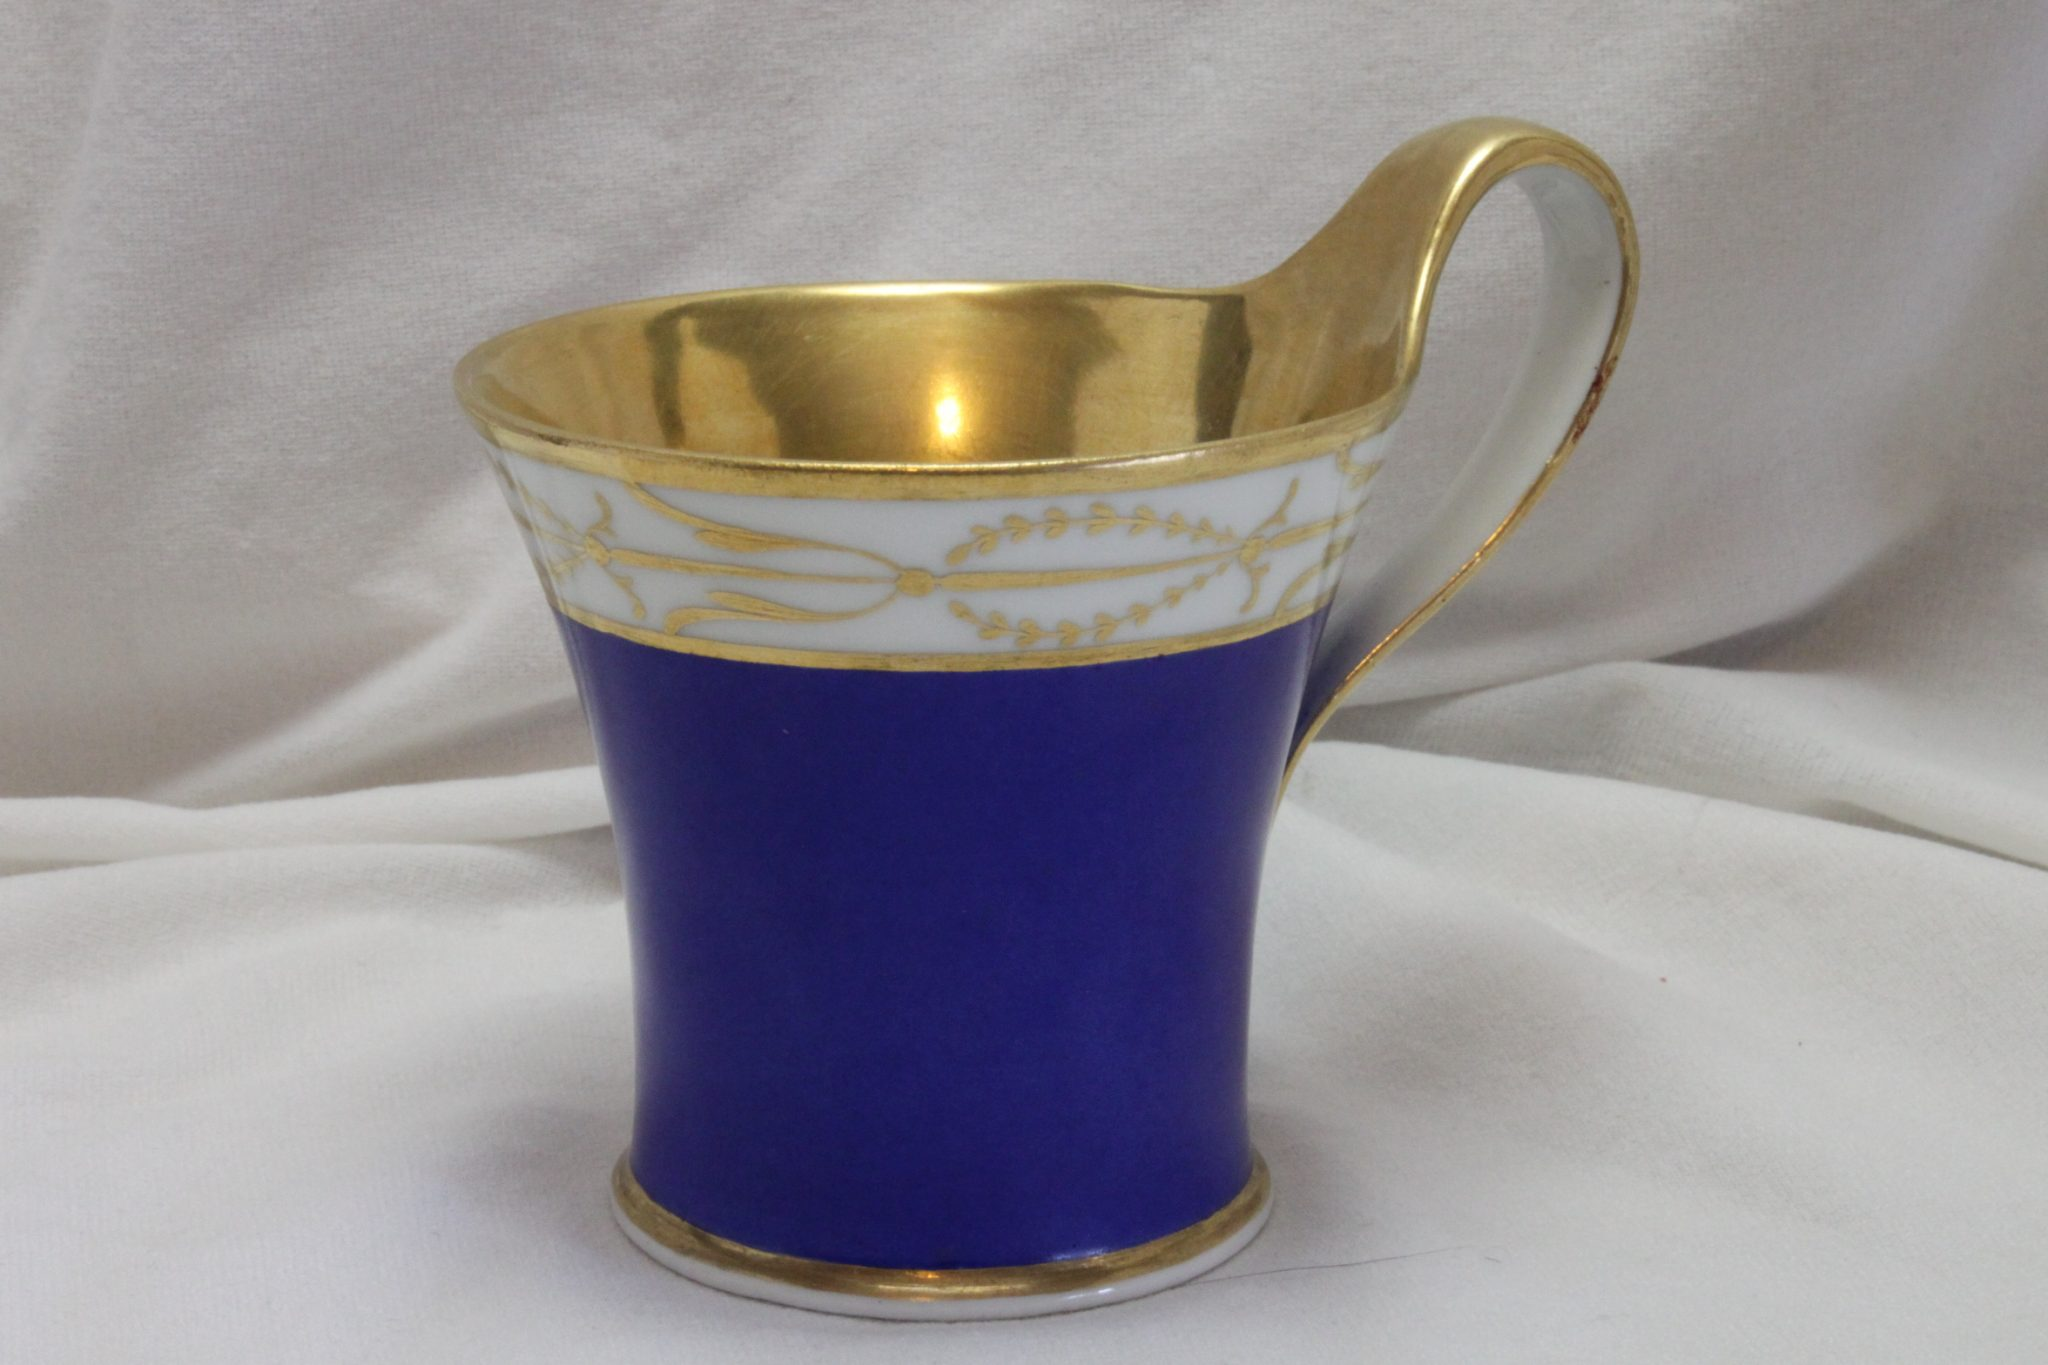 Berlin cobalt blue and gilt cup